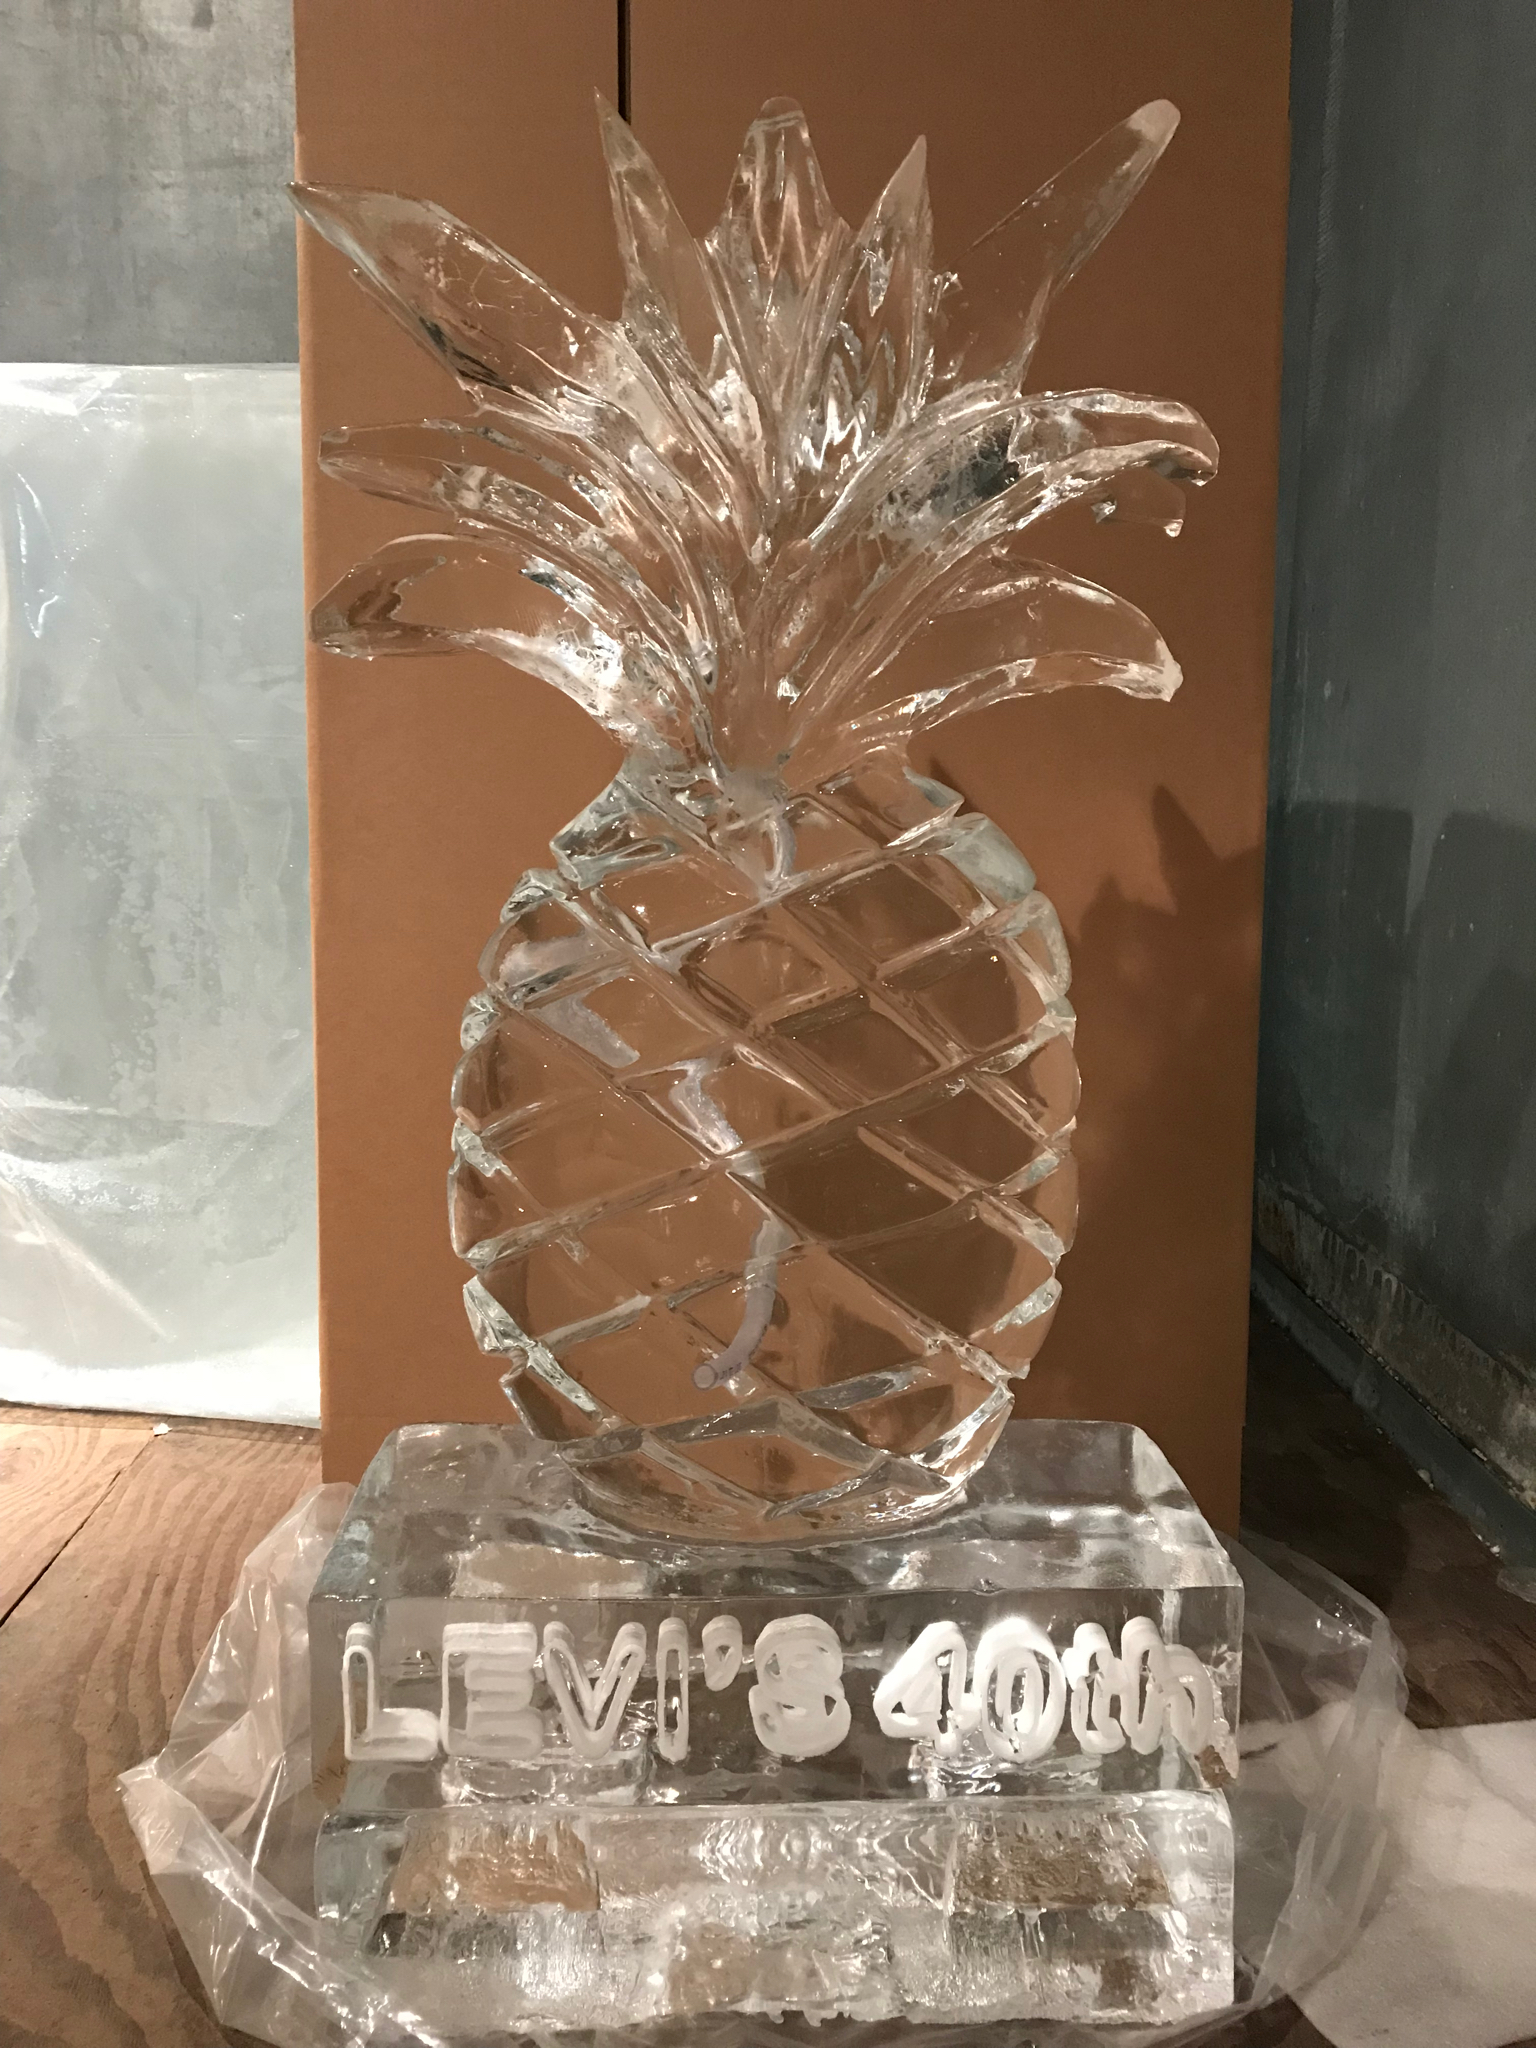 Offering a tropical twist to the event, this pineapple is an example of the different types of drink luges that we can create. Snow inlay engraving identifies the event.